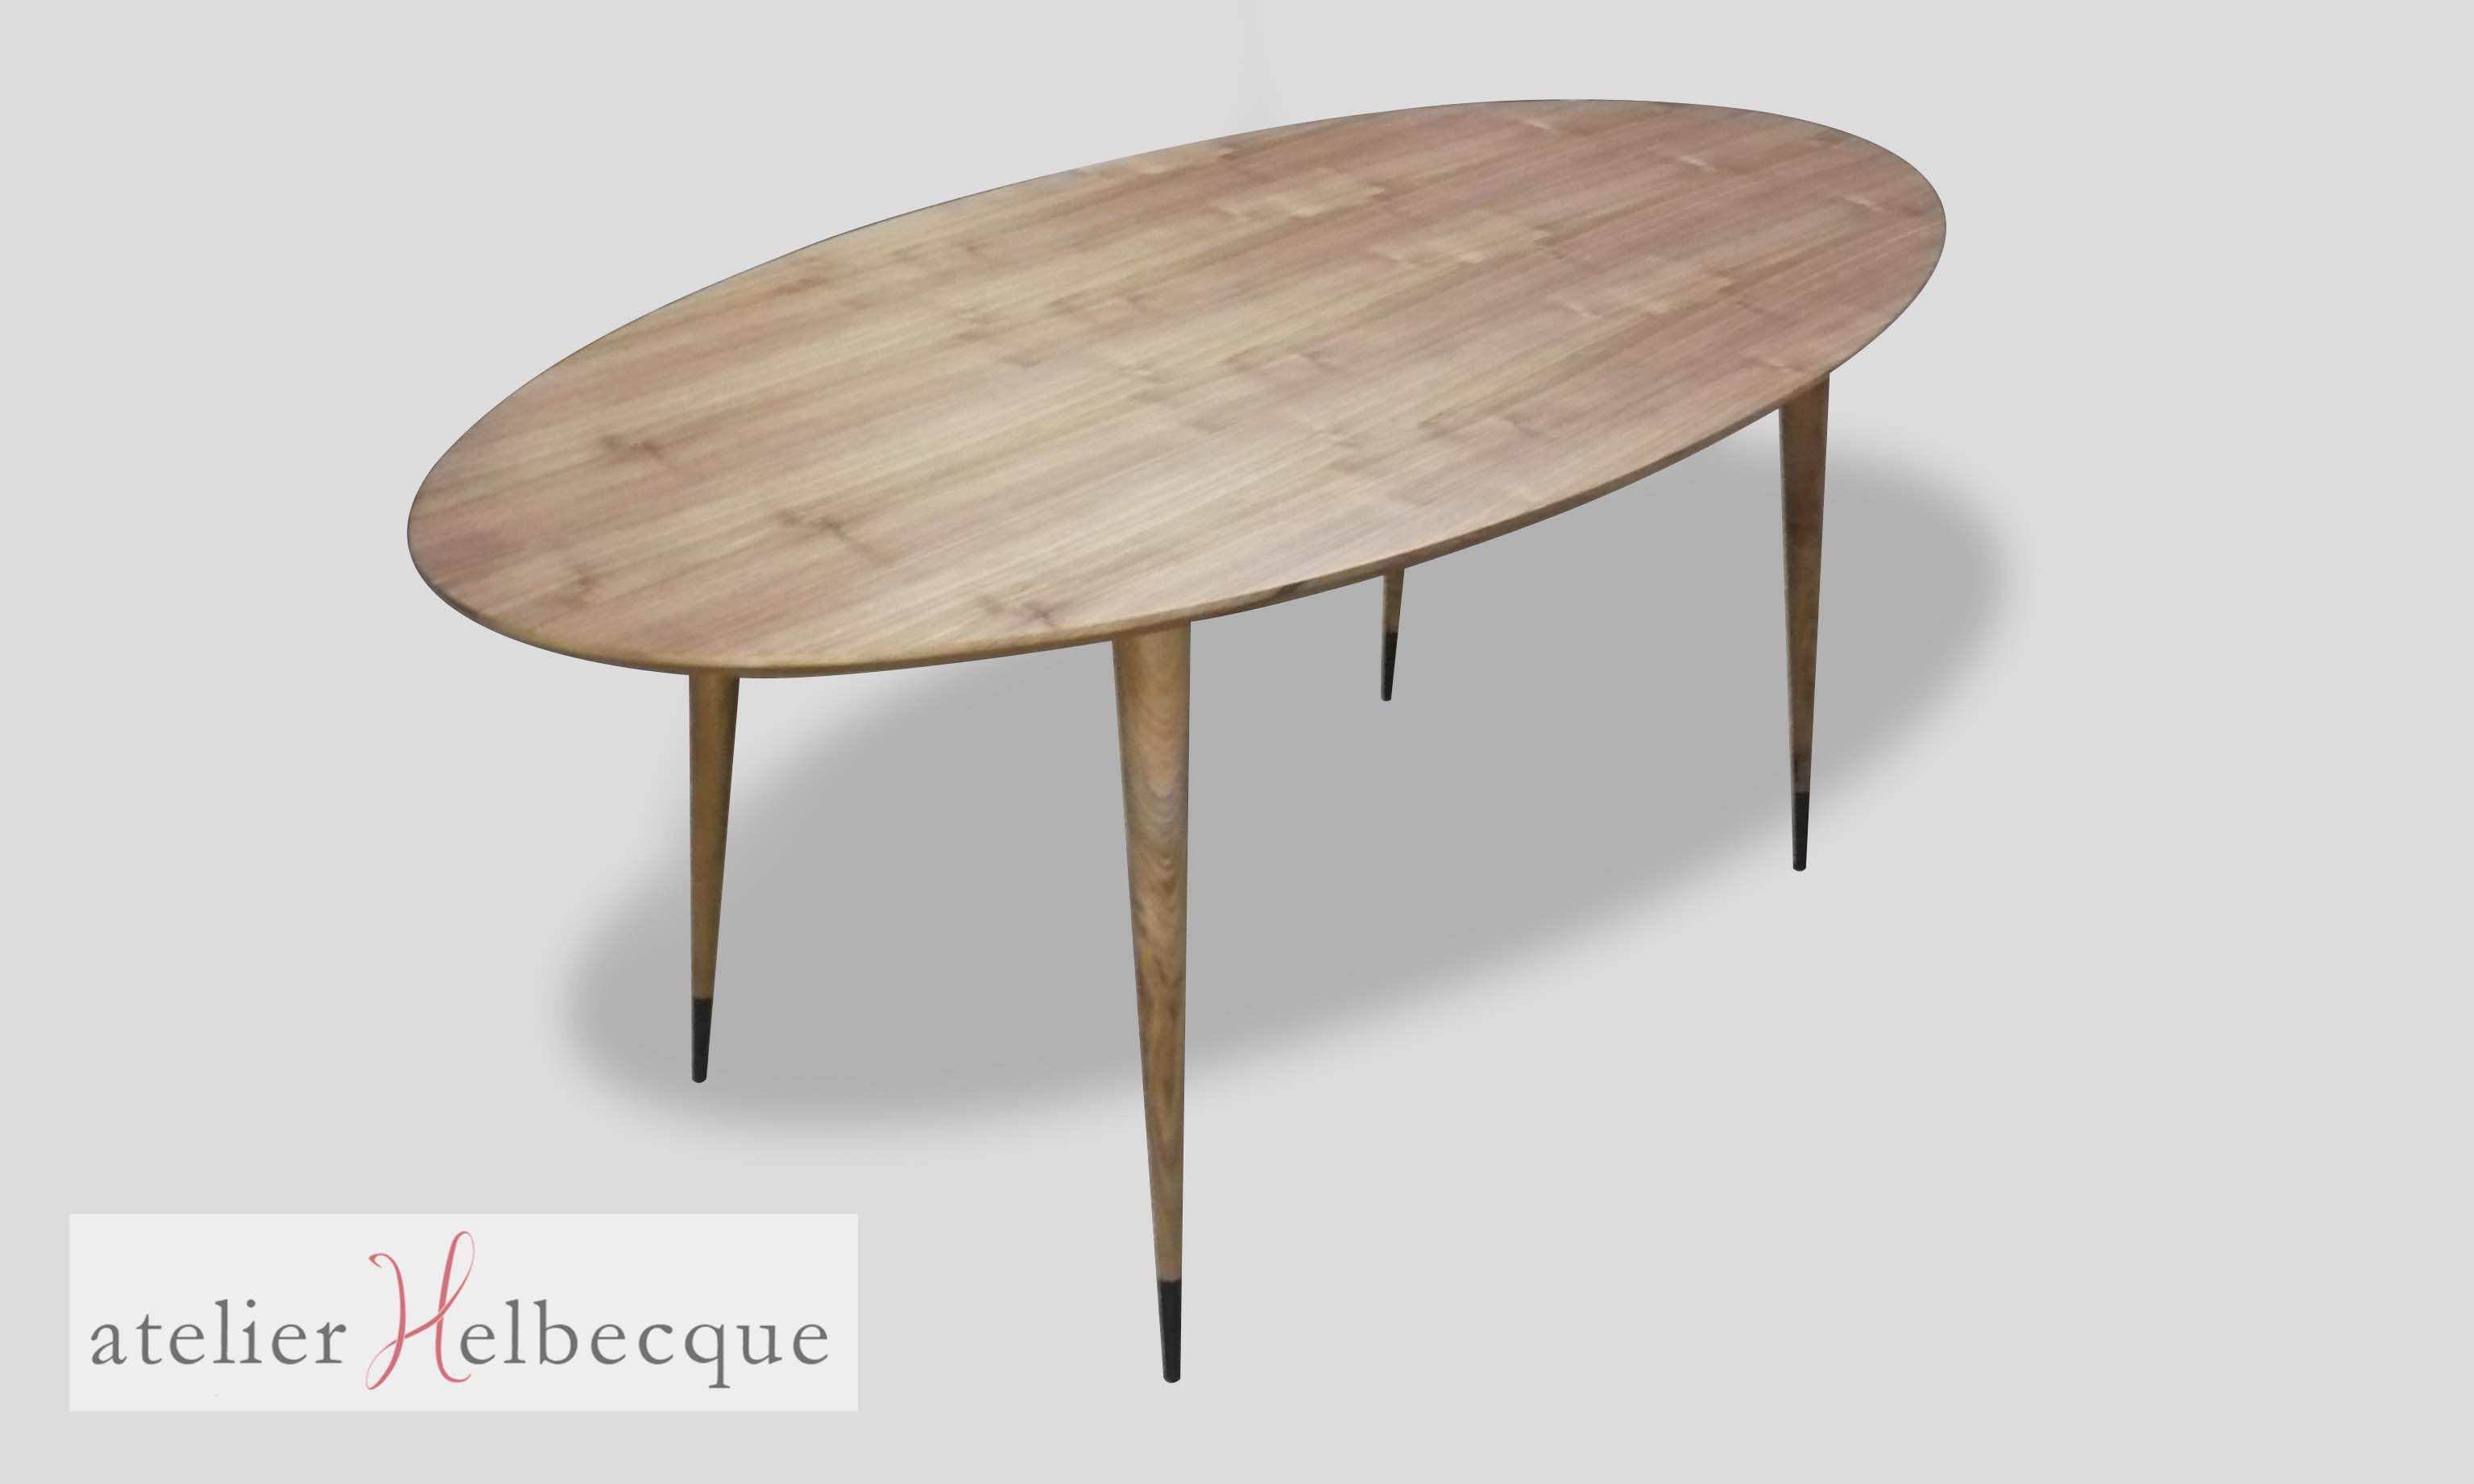 B niste cr ateur fabricant de table contemporaine atelier - Table de salon ovale ...